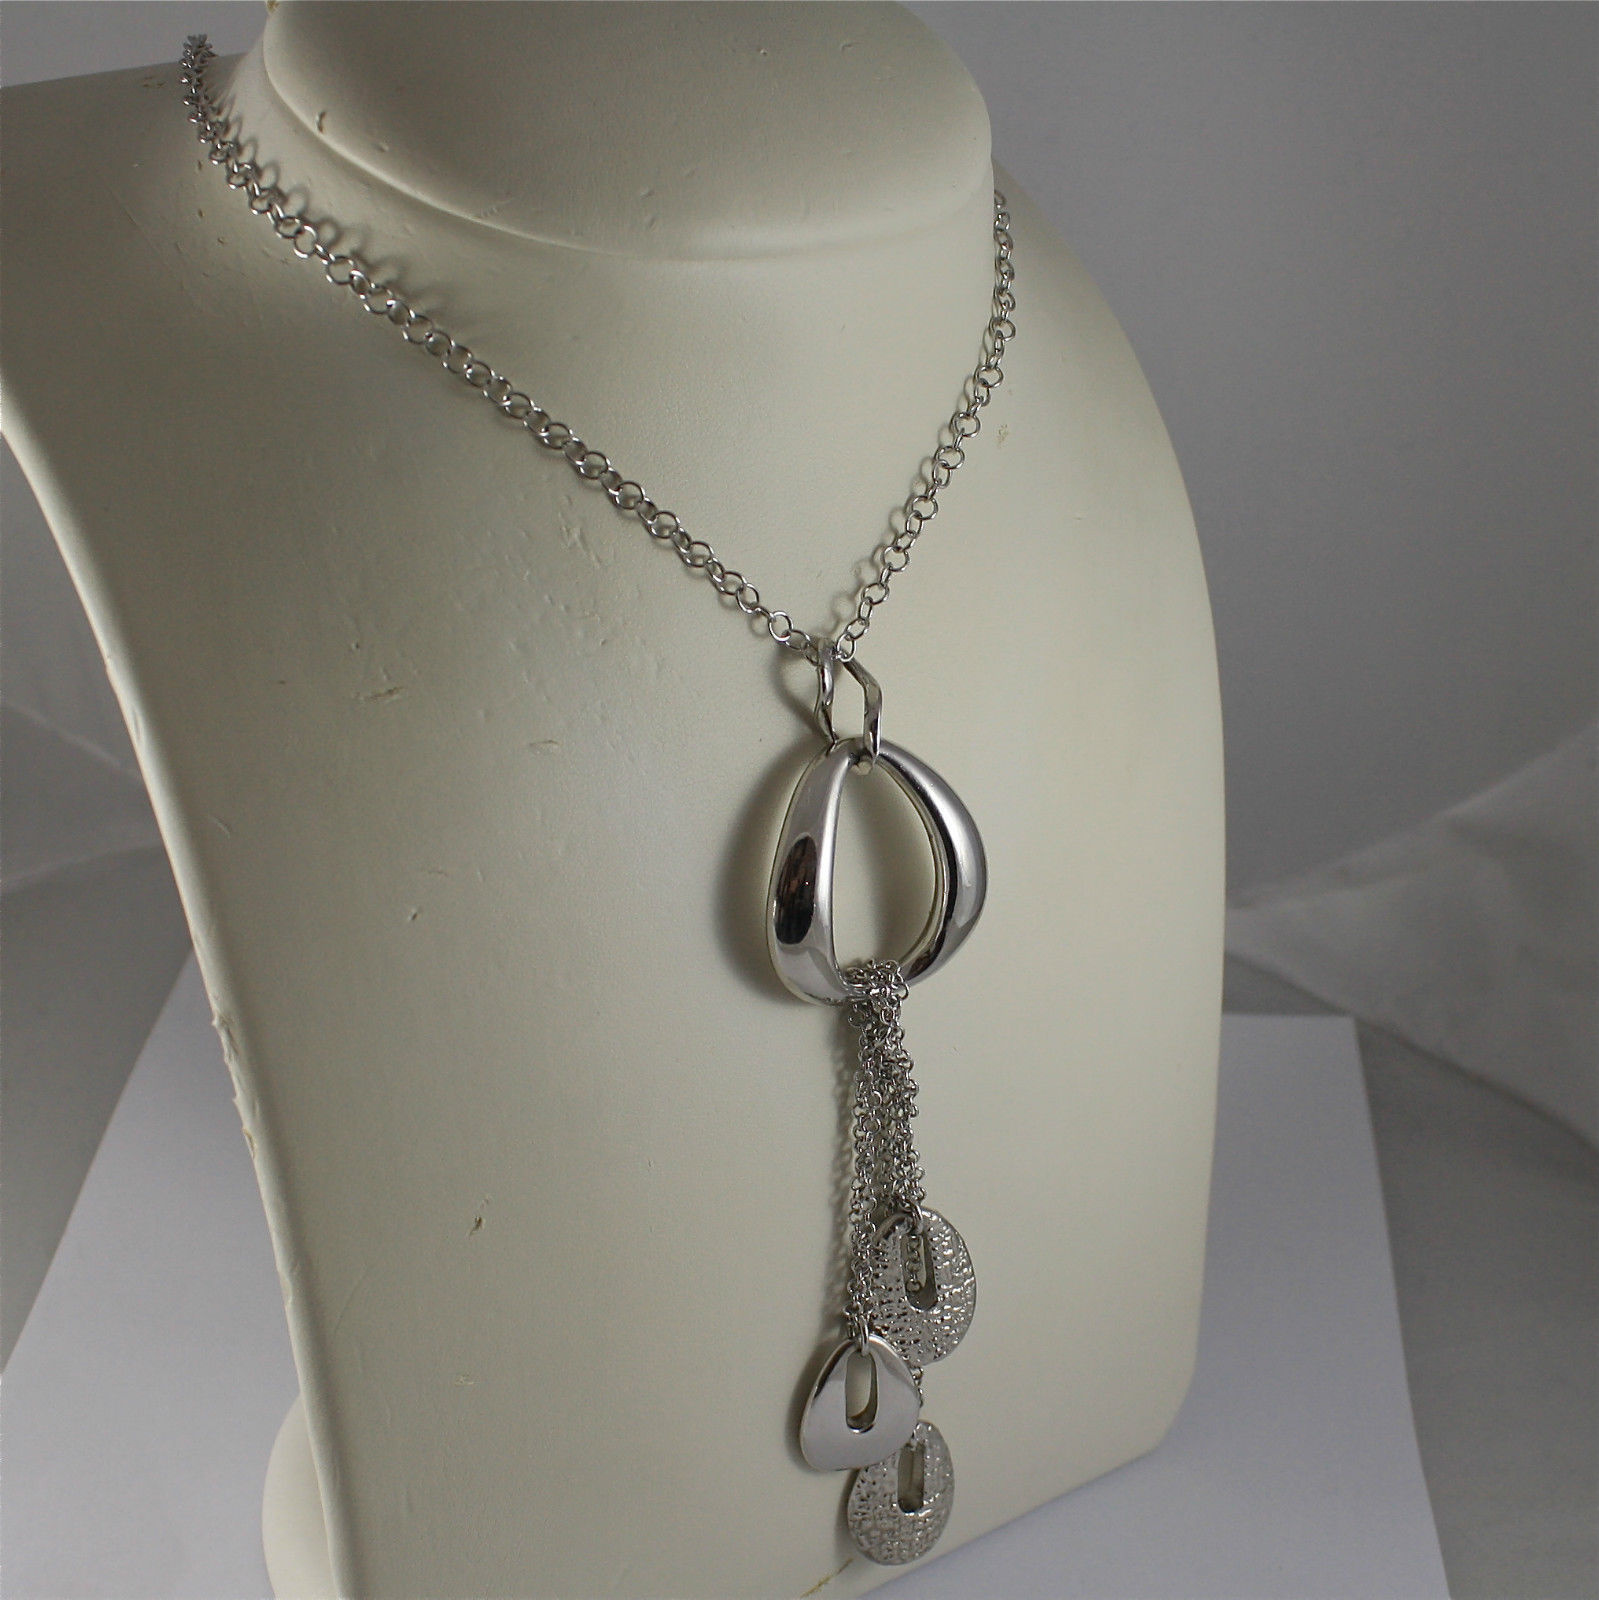 .925 RHODIUM SILVER NECKLACE, SCARF, OVAL CENTRAL,TRIPLE PENDANT, RAW WORKED.